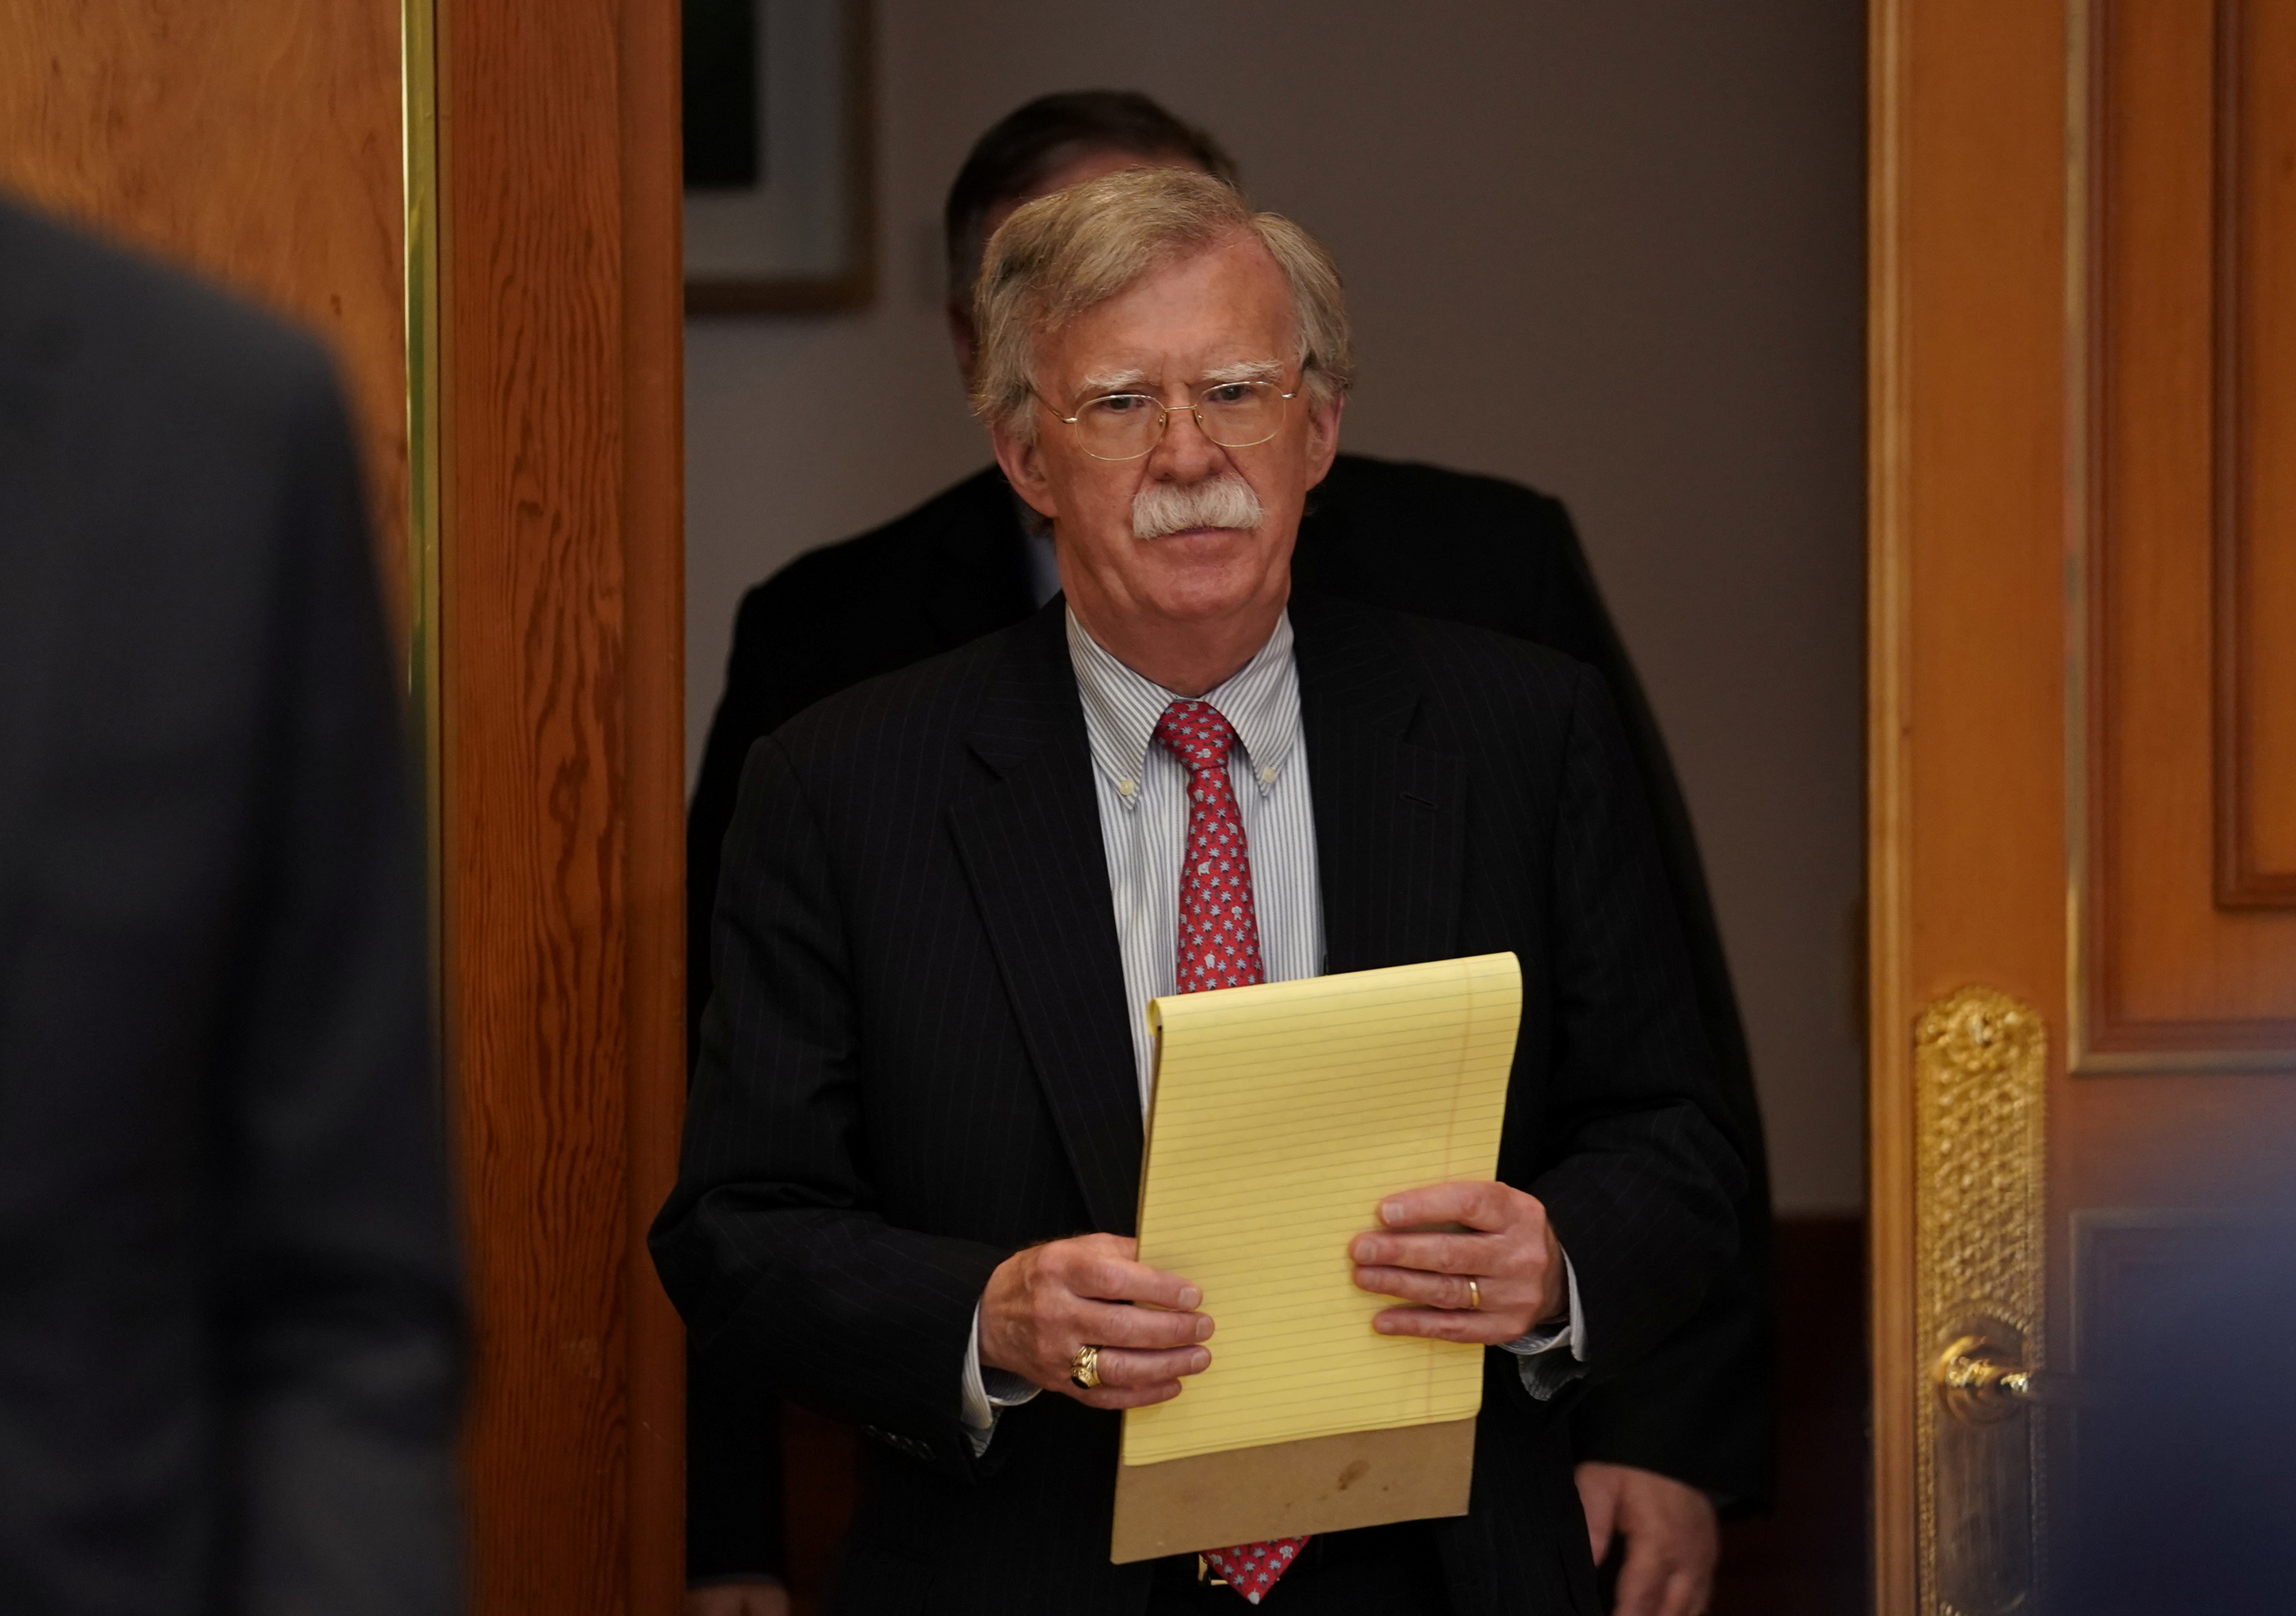 FILE PHOTO: U.S. National Security Adviser John Bolton attends a meeting between U.S. President Donald Trump and South Korean President Moon Jae-in at the Blue House in Seoul, South Korea, June 30, 2019. REUTERS/Kevin Lamarque